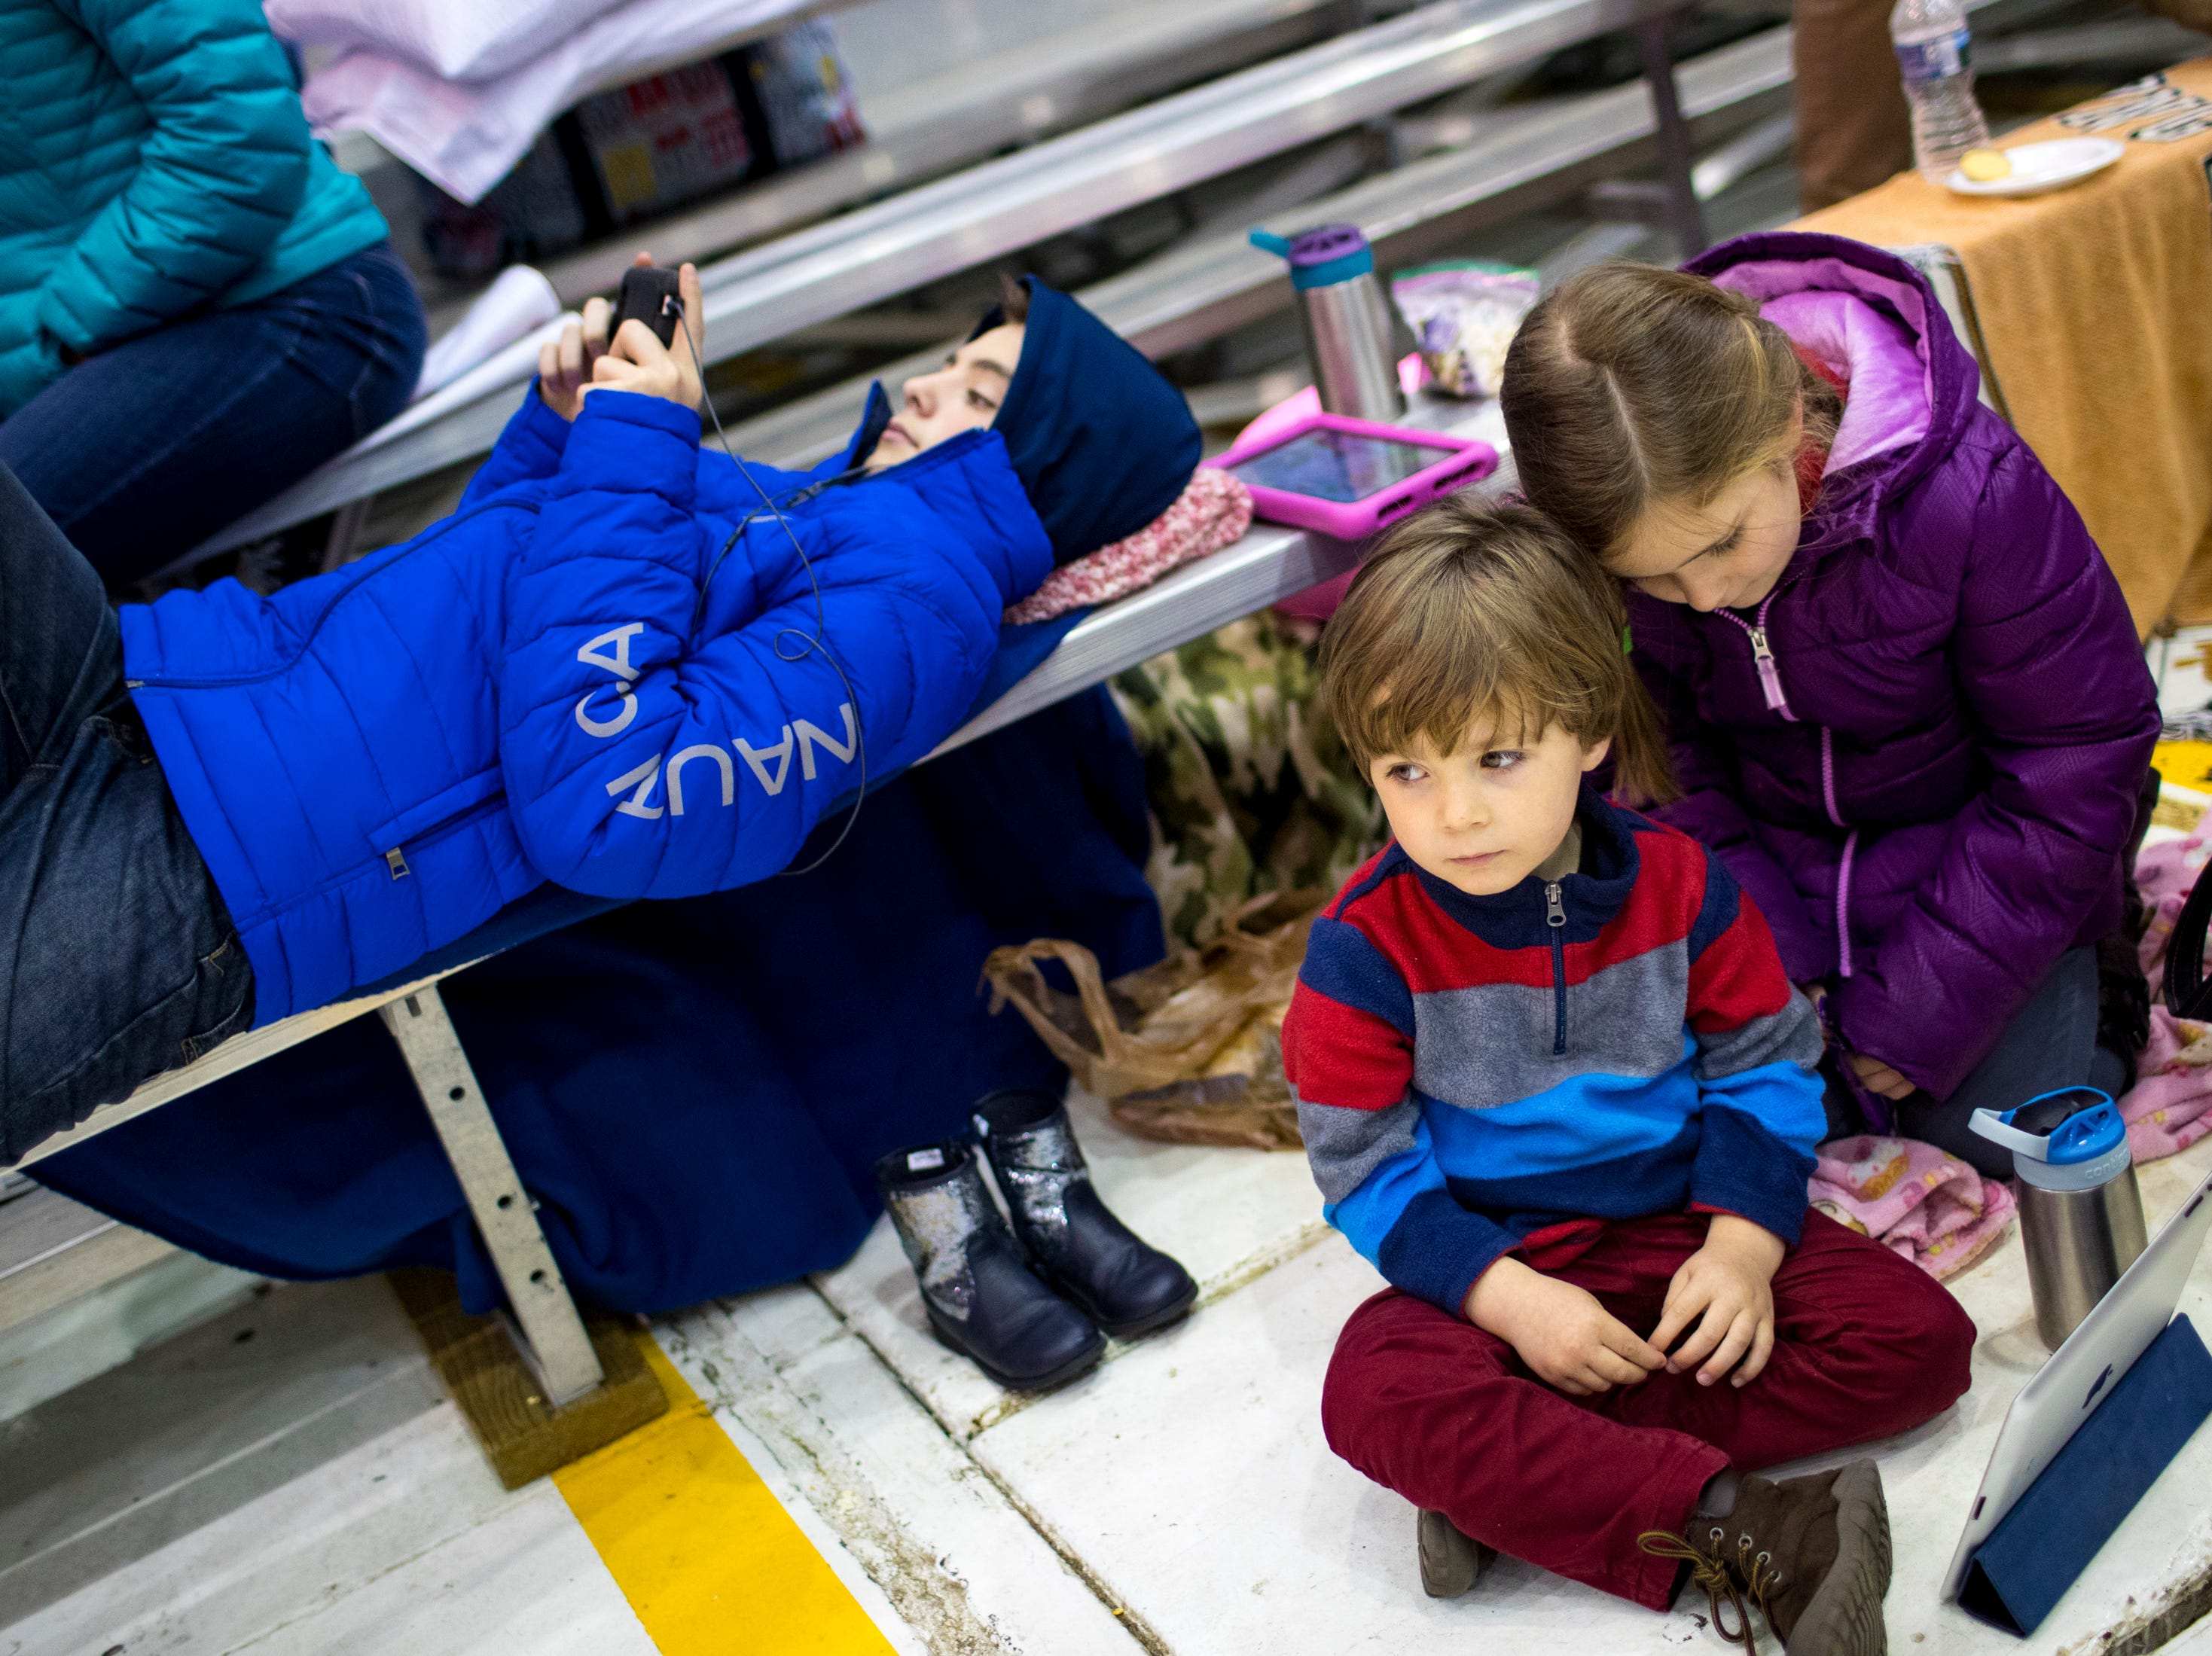 Ethan Miller, 13, watches Netflix on his phone as Alexander Quandt, 3, and Valentina Quandt, 6, wait for the plane carrying their parents, 1st Lt. Justin Egner and 1st Lt. Daniel Quandt, to arrive during the welcome home ceremony for the 2nd Battalion, 44th Air Defense Artillery Regiment and 101st Airborne Division at Fort Campbell in the early hours of Monday, Nov. 19, 2018. The soldiers were returning from a 9-month deployment in Afghanistan.